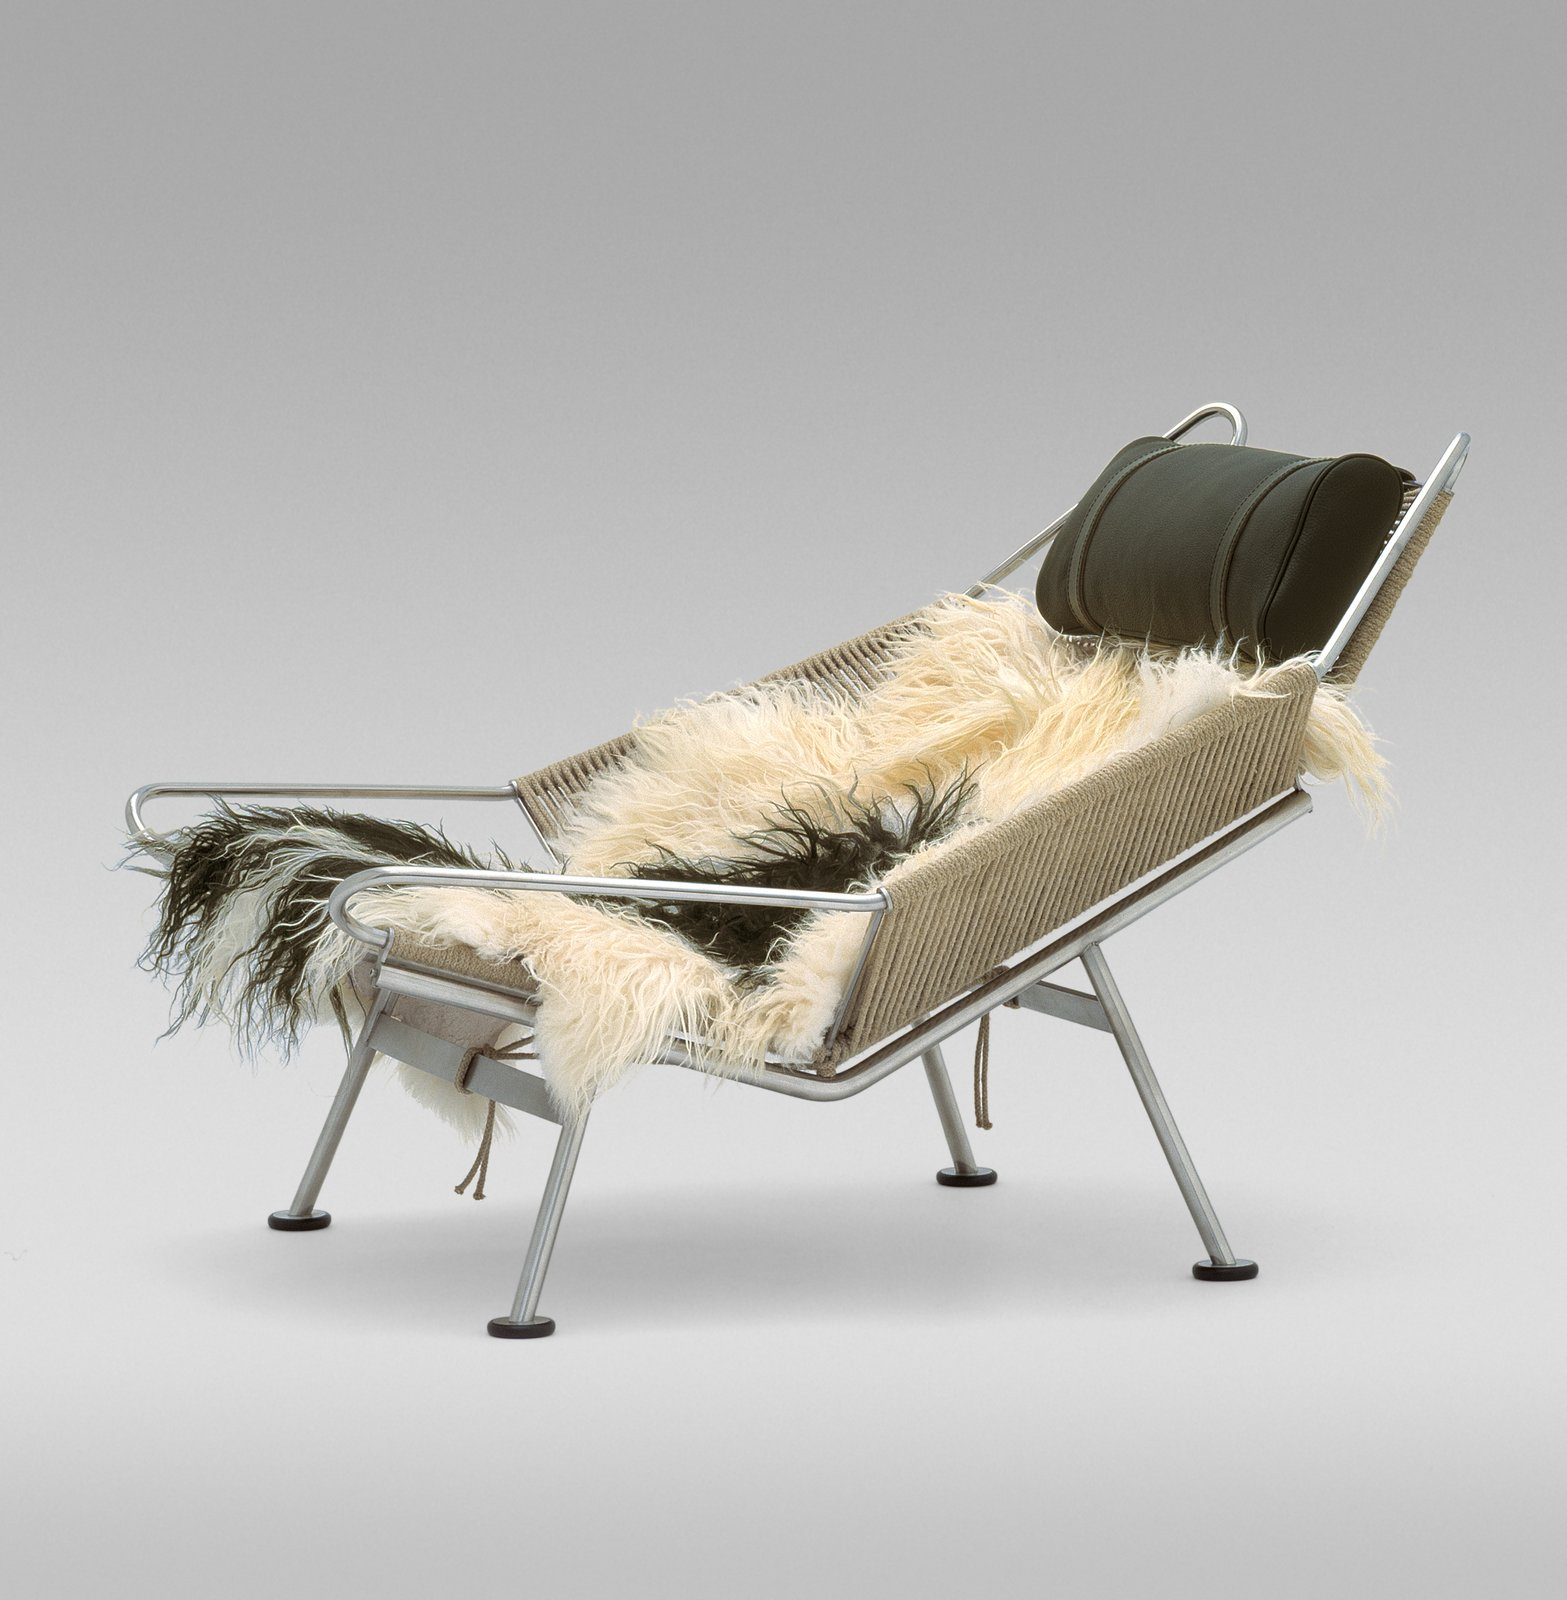 The lush design for the Flag Halyard Chair (1950) was supposedly inspired by a day at the beach, when Wegner was slowing carving himself a spot in the sand to relax. Lounging is supported by 240 meters of flag line strung through a steel frame and sheepskin covering—those coveting this chair can even reserve their own sheepskin. Manufactured by PP Møbler. Photo by Jens Mourits Sørensen.  Photo 4 of 9 in 8 Iconic Chairs by Hans Wegner